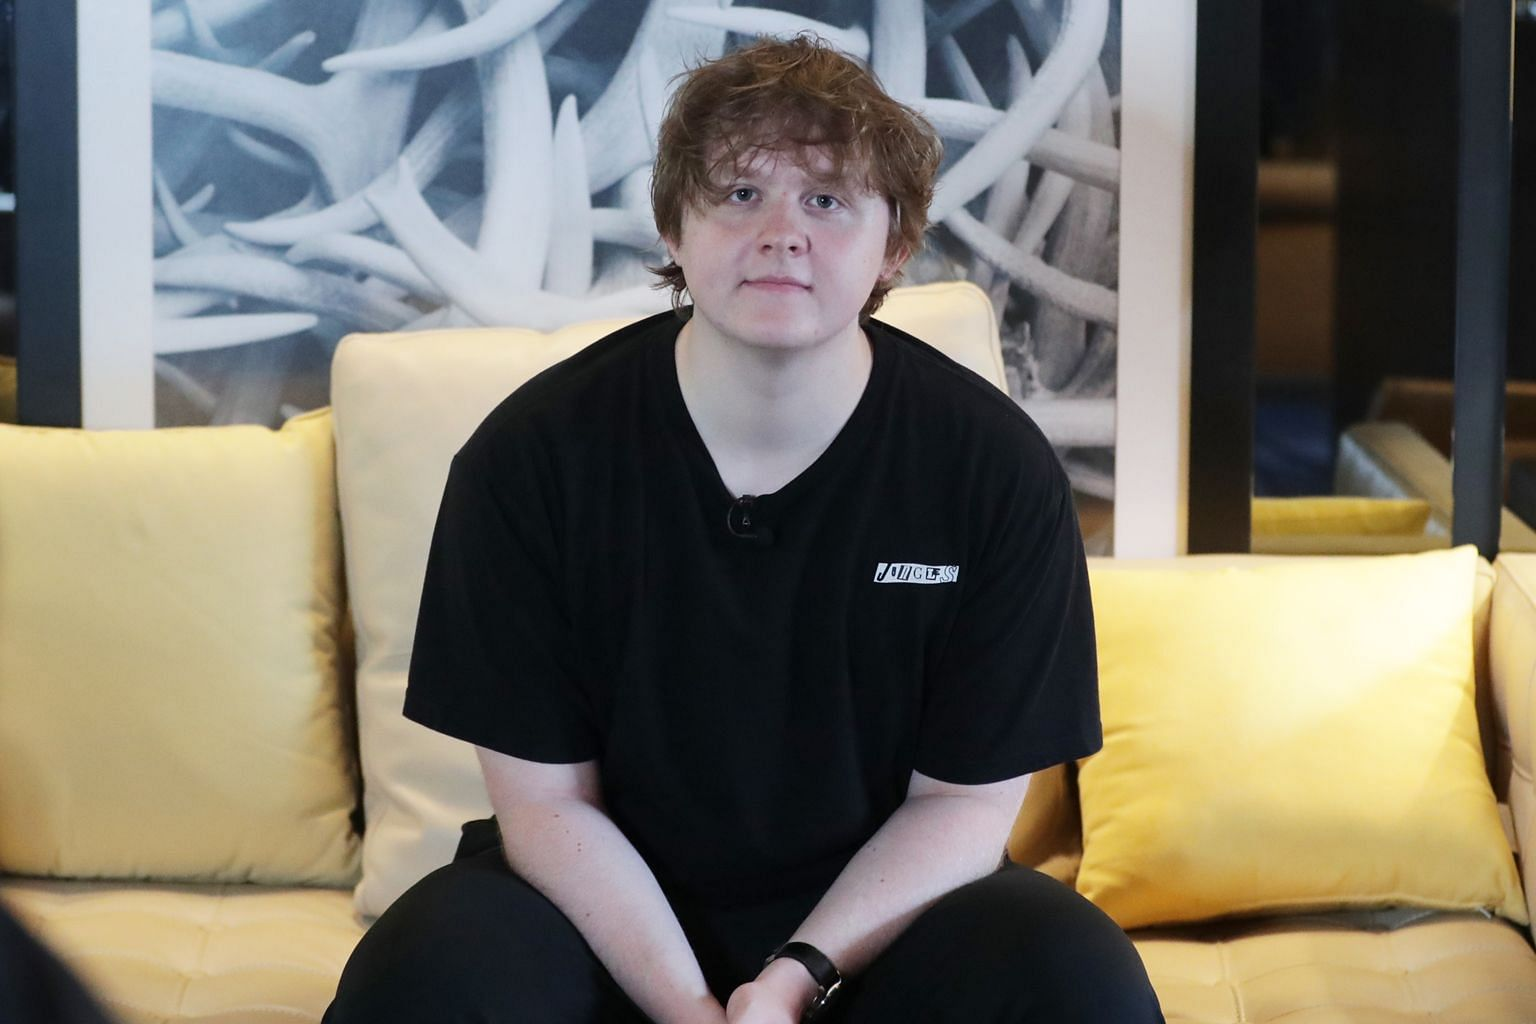 Crowned Britain's top-selling artist last year, Lewis Capaldi played his first concert in Singapore last Saturday.